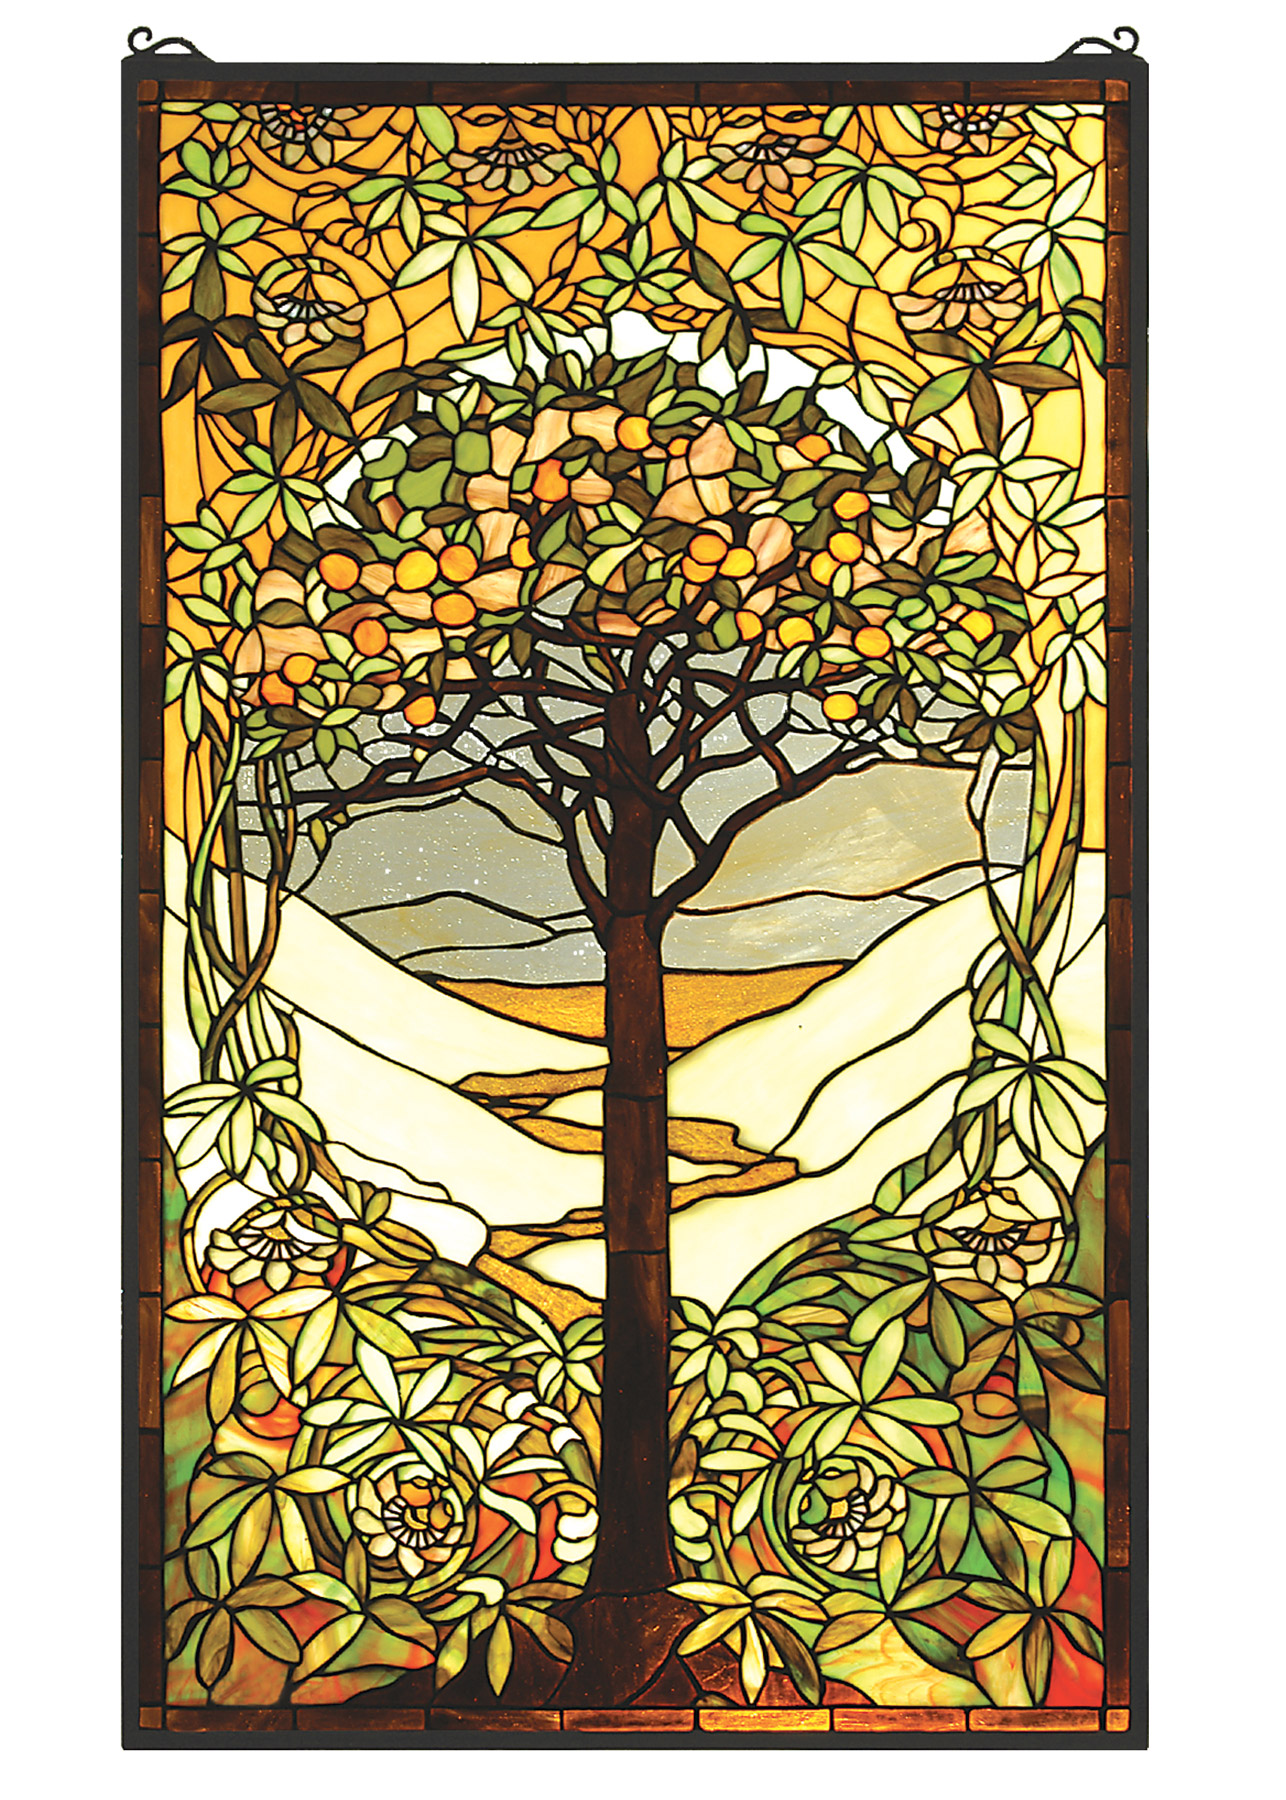 Meyda 66668 Tiffany Tree Of Life Stained Glass Window